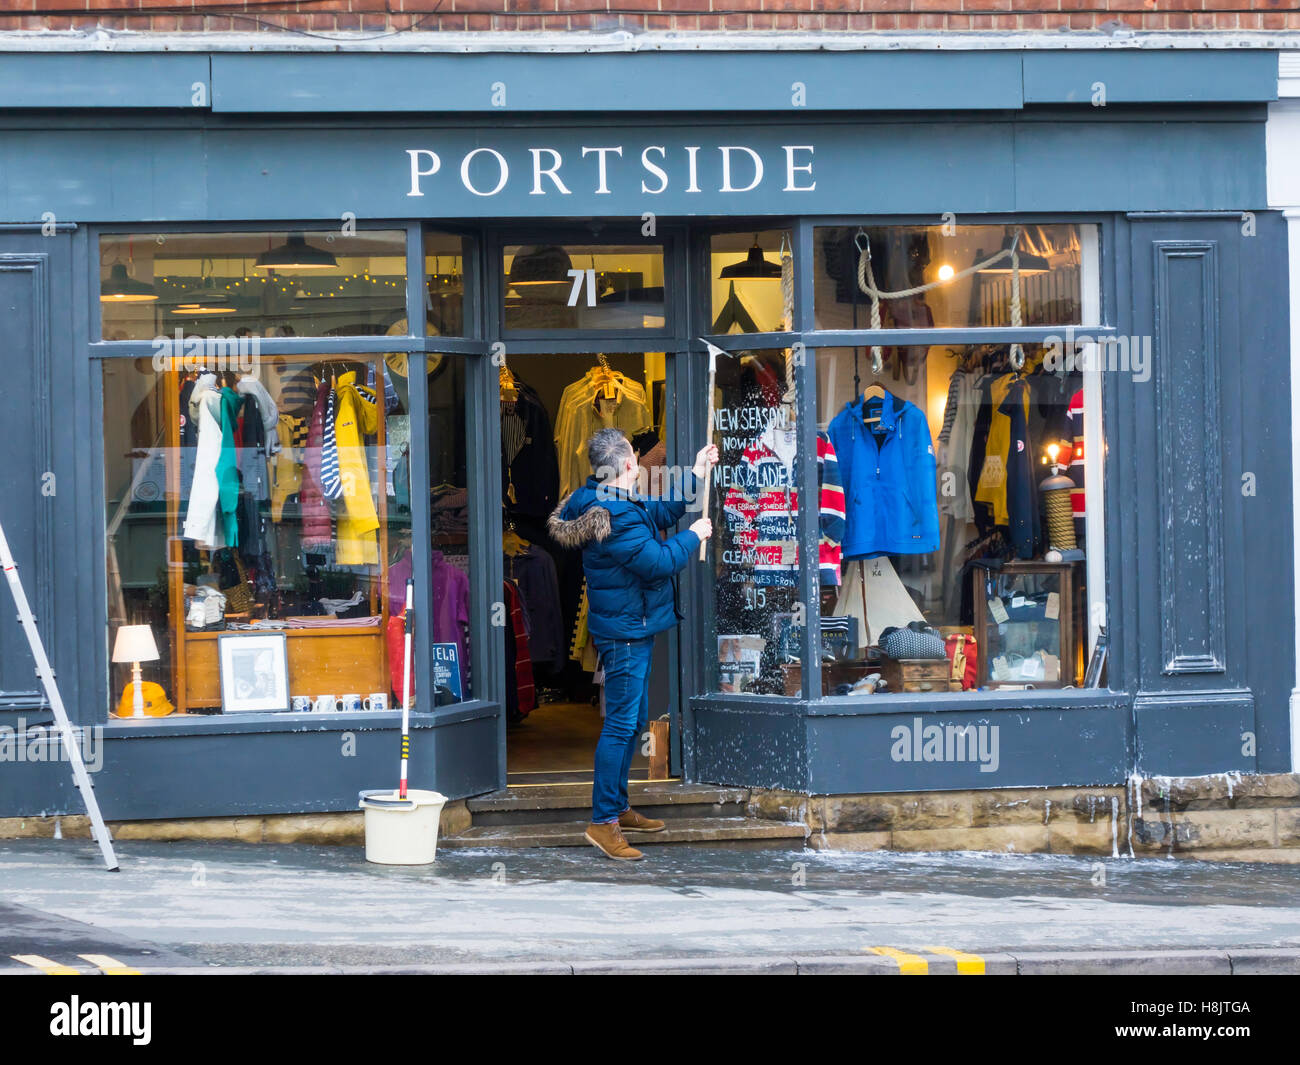 Man with mops and soapy water cleaning windows and paintwork on the front of 'Portside' a Clothing Shop - Stock Image